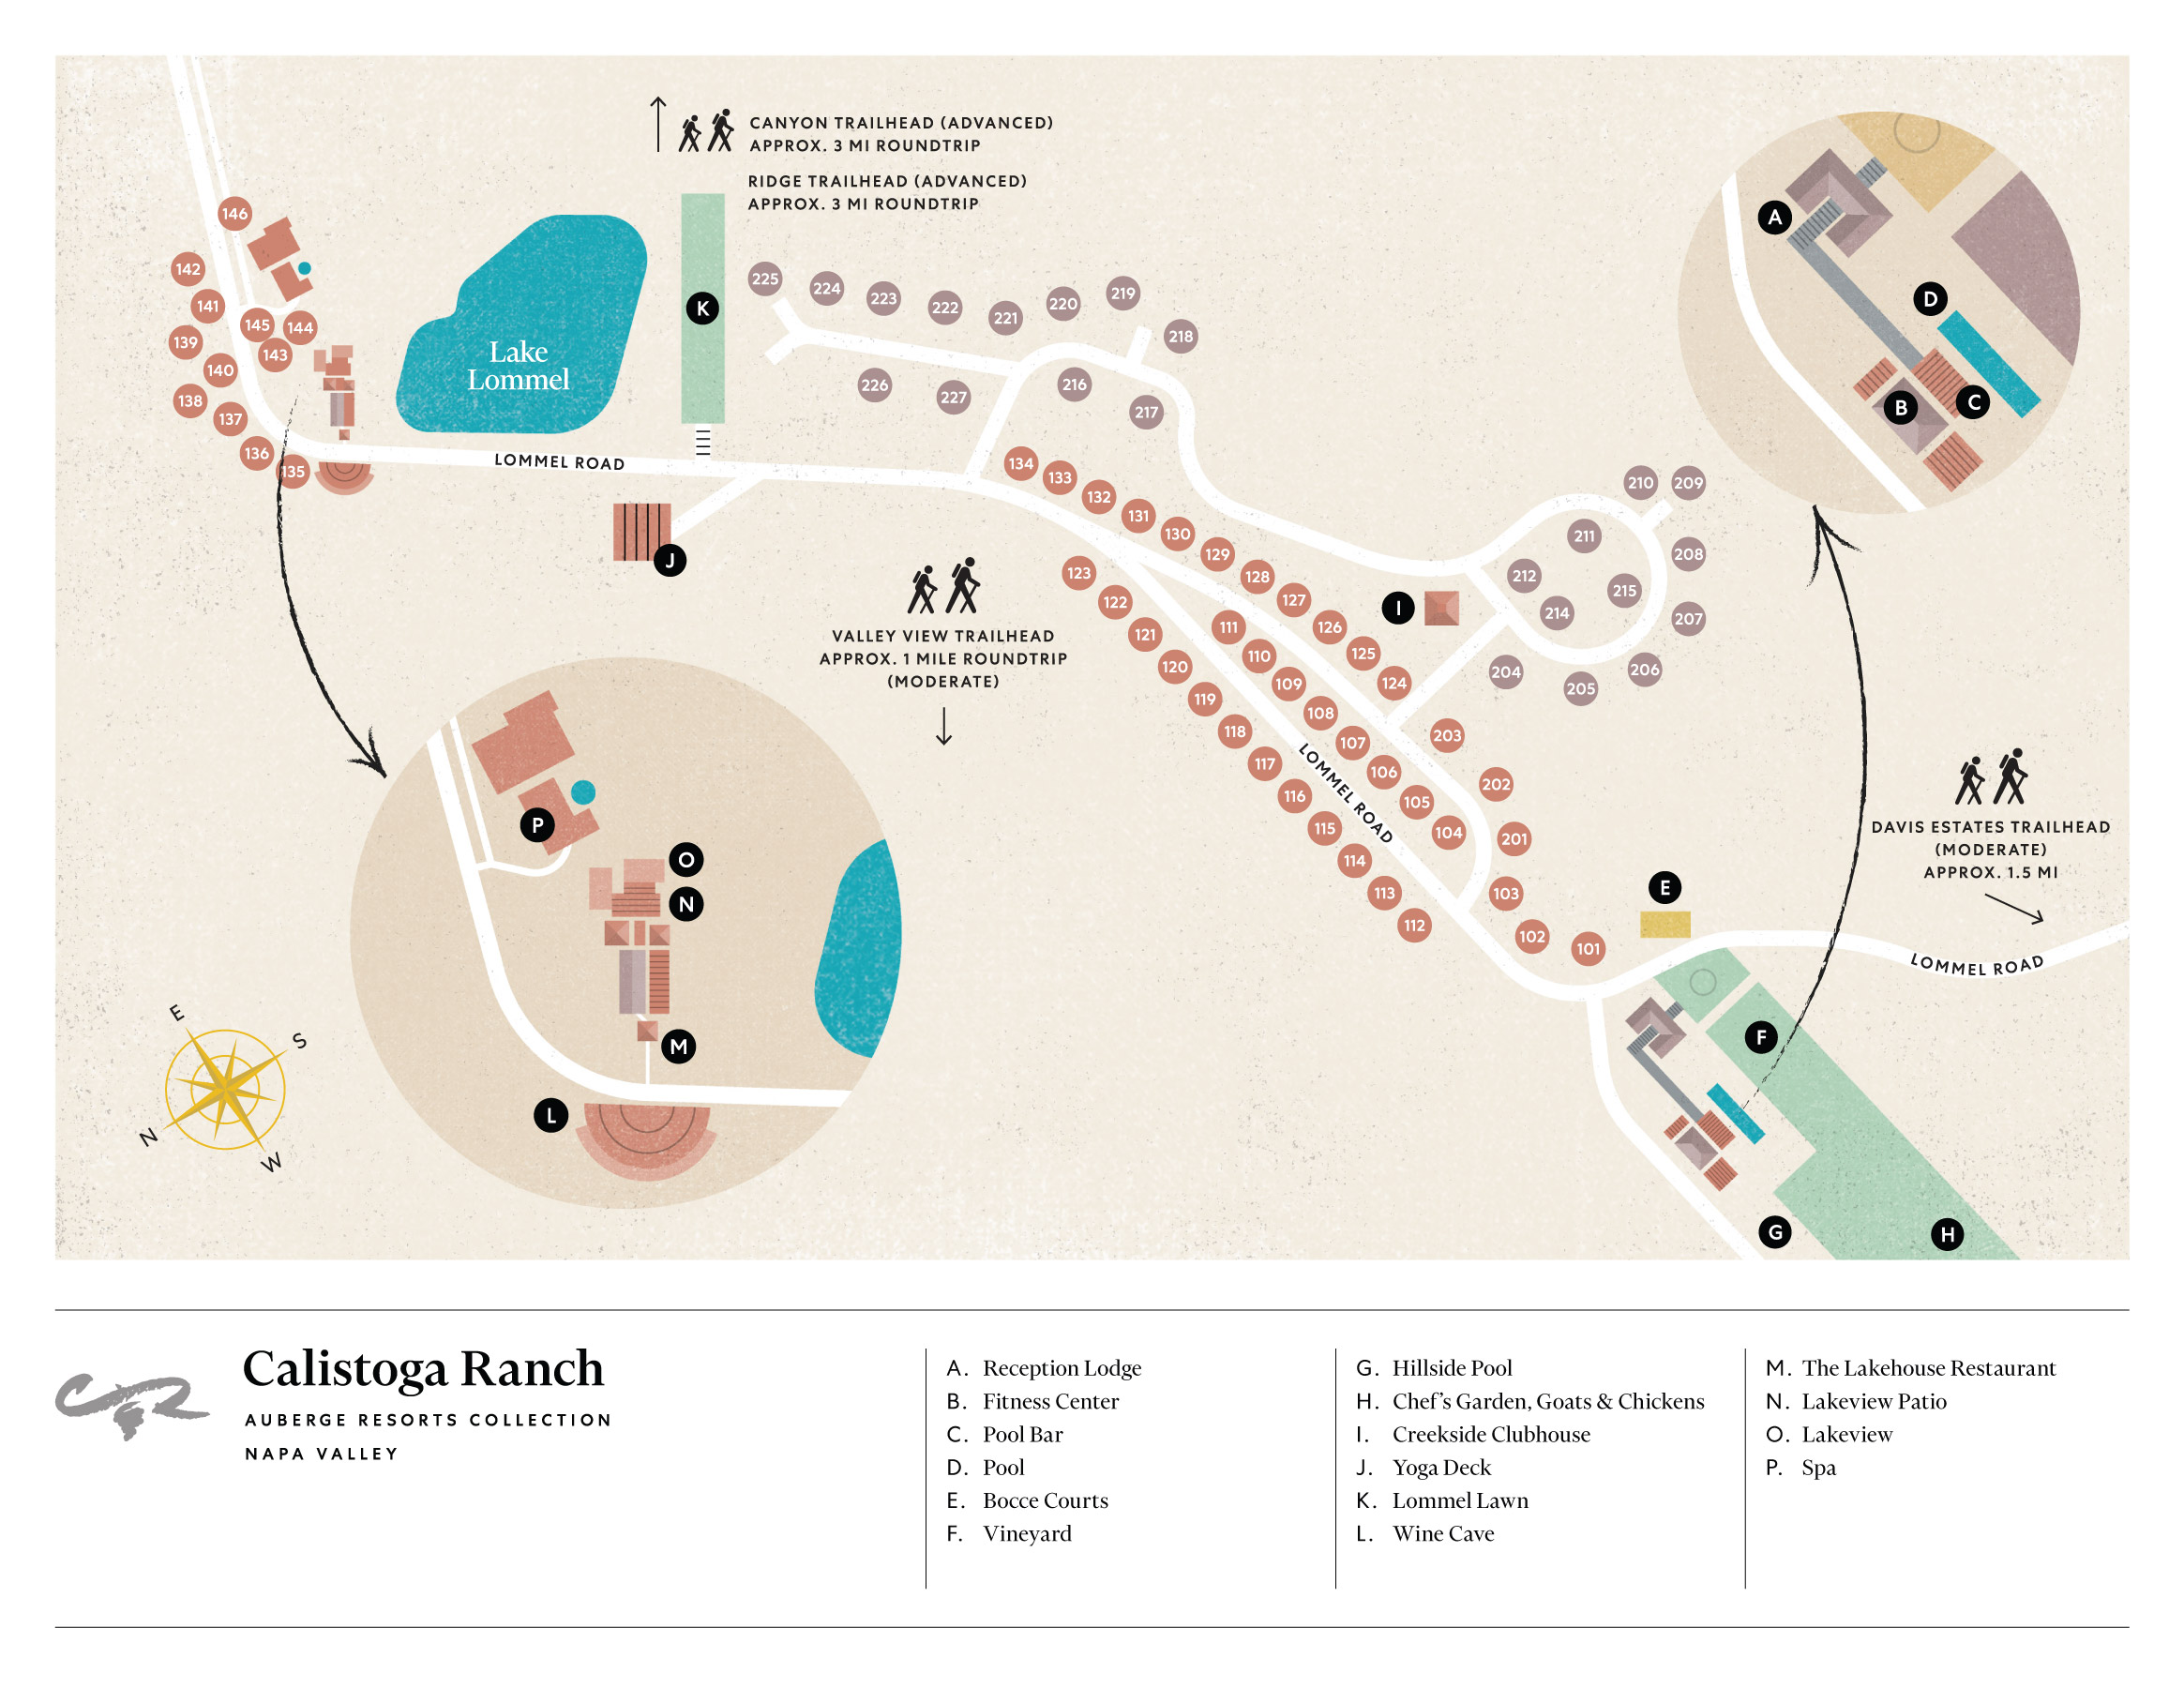 Calistoga Ranch, an Auberge Resort | Napa Valley on serramonte map, sonoma map, california map, angwin map, auberry map, hayfork map, lafayette map, cedar ridge map, hacienda map, dollar point map, st. augustine map, forestville map, burney map, brooktrails map, downieville map, napa map, san francisco wineries map, port costa map, chualar map, clayton map,